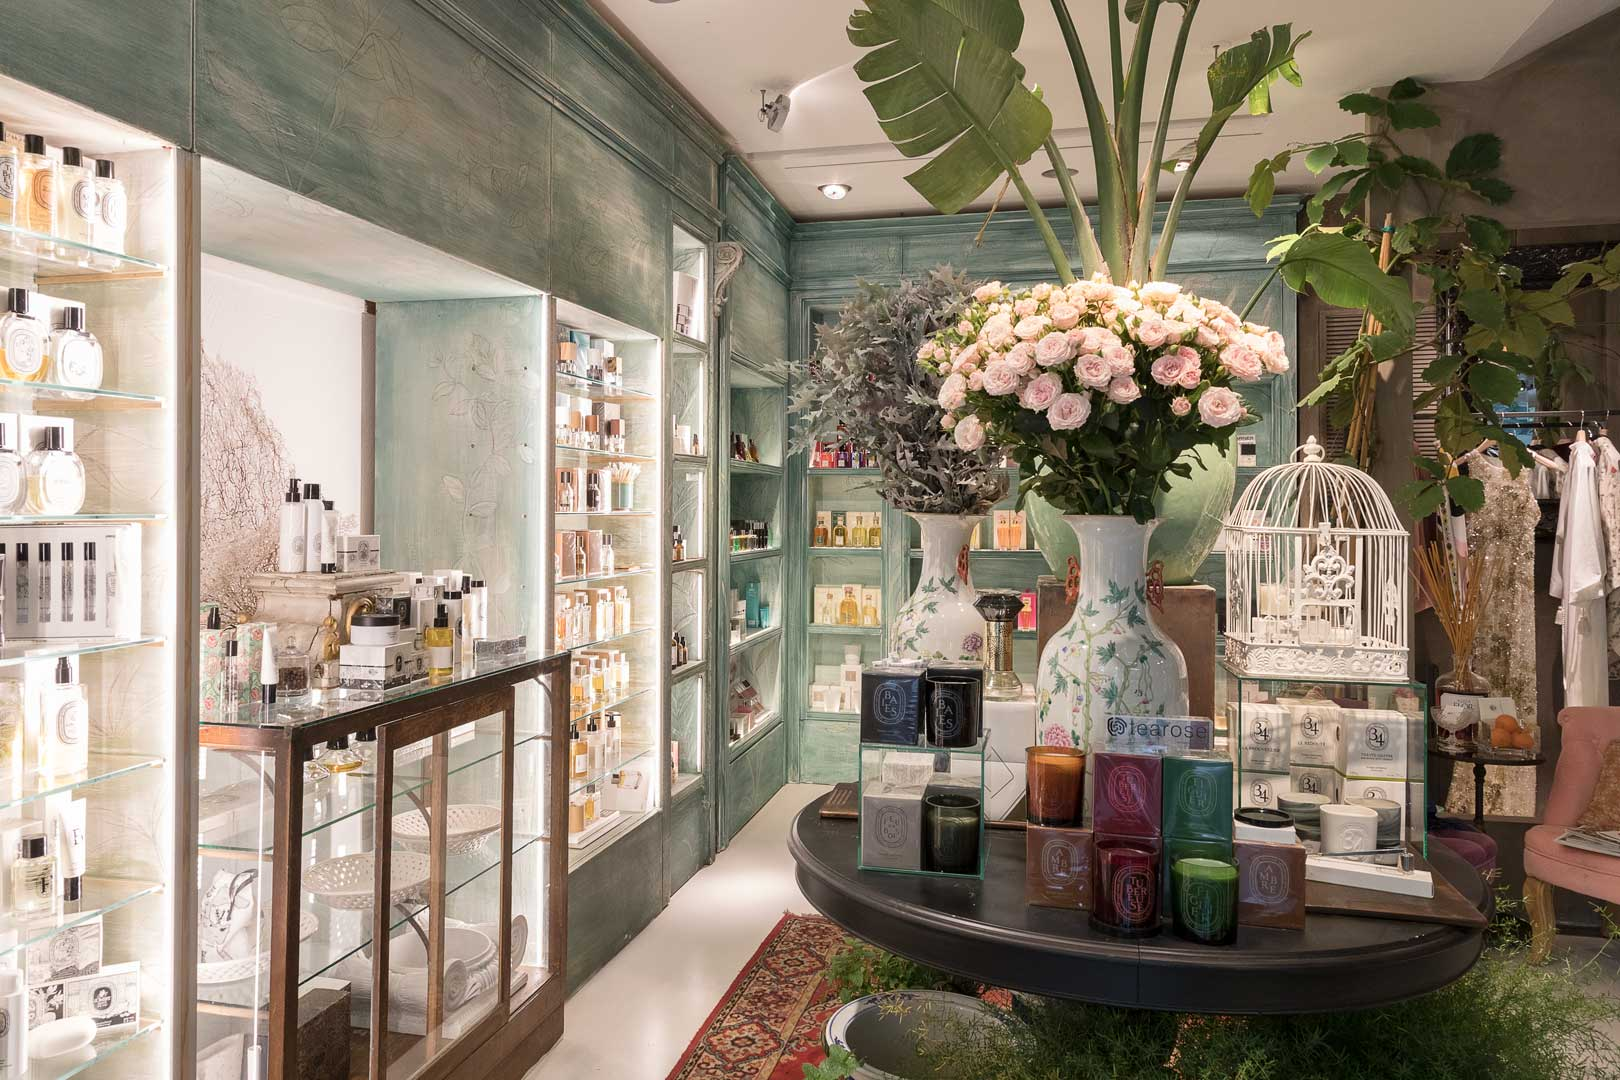 Where to find the perfect perfume for you